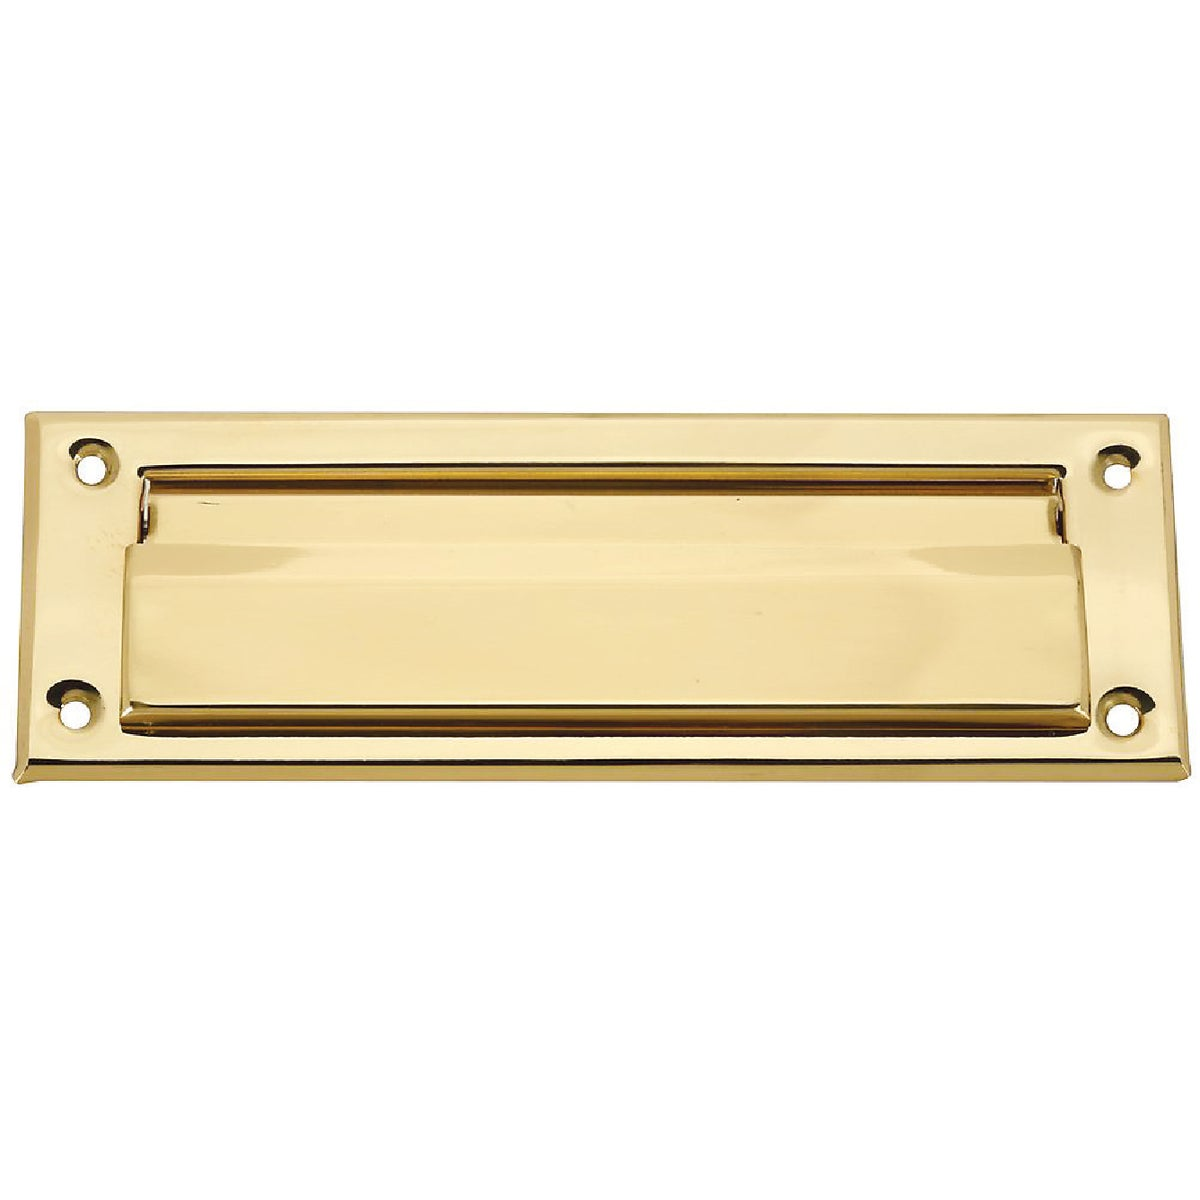 1-1/2X7 MAIL SLOT - N197913 by National Mfg Co